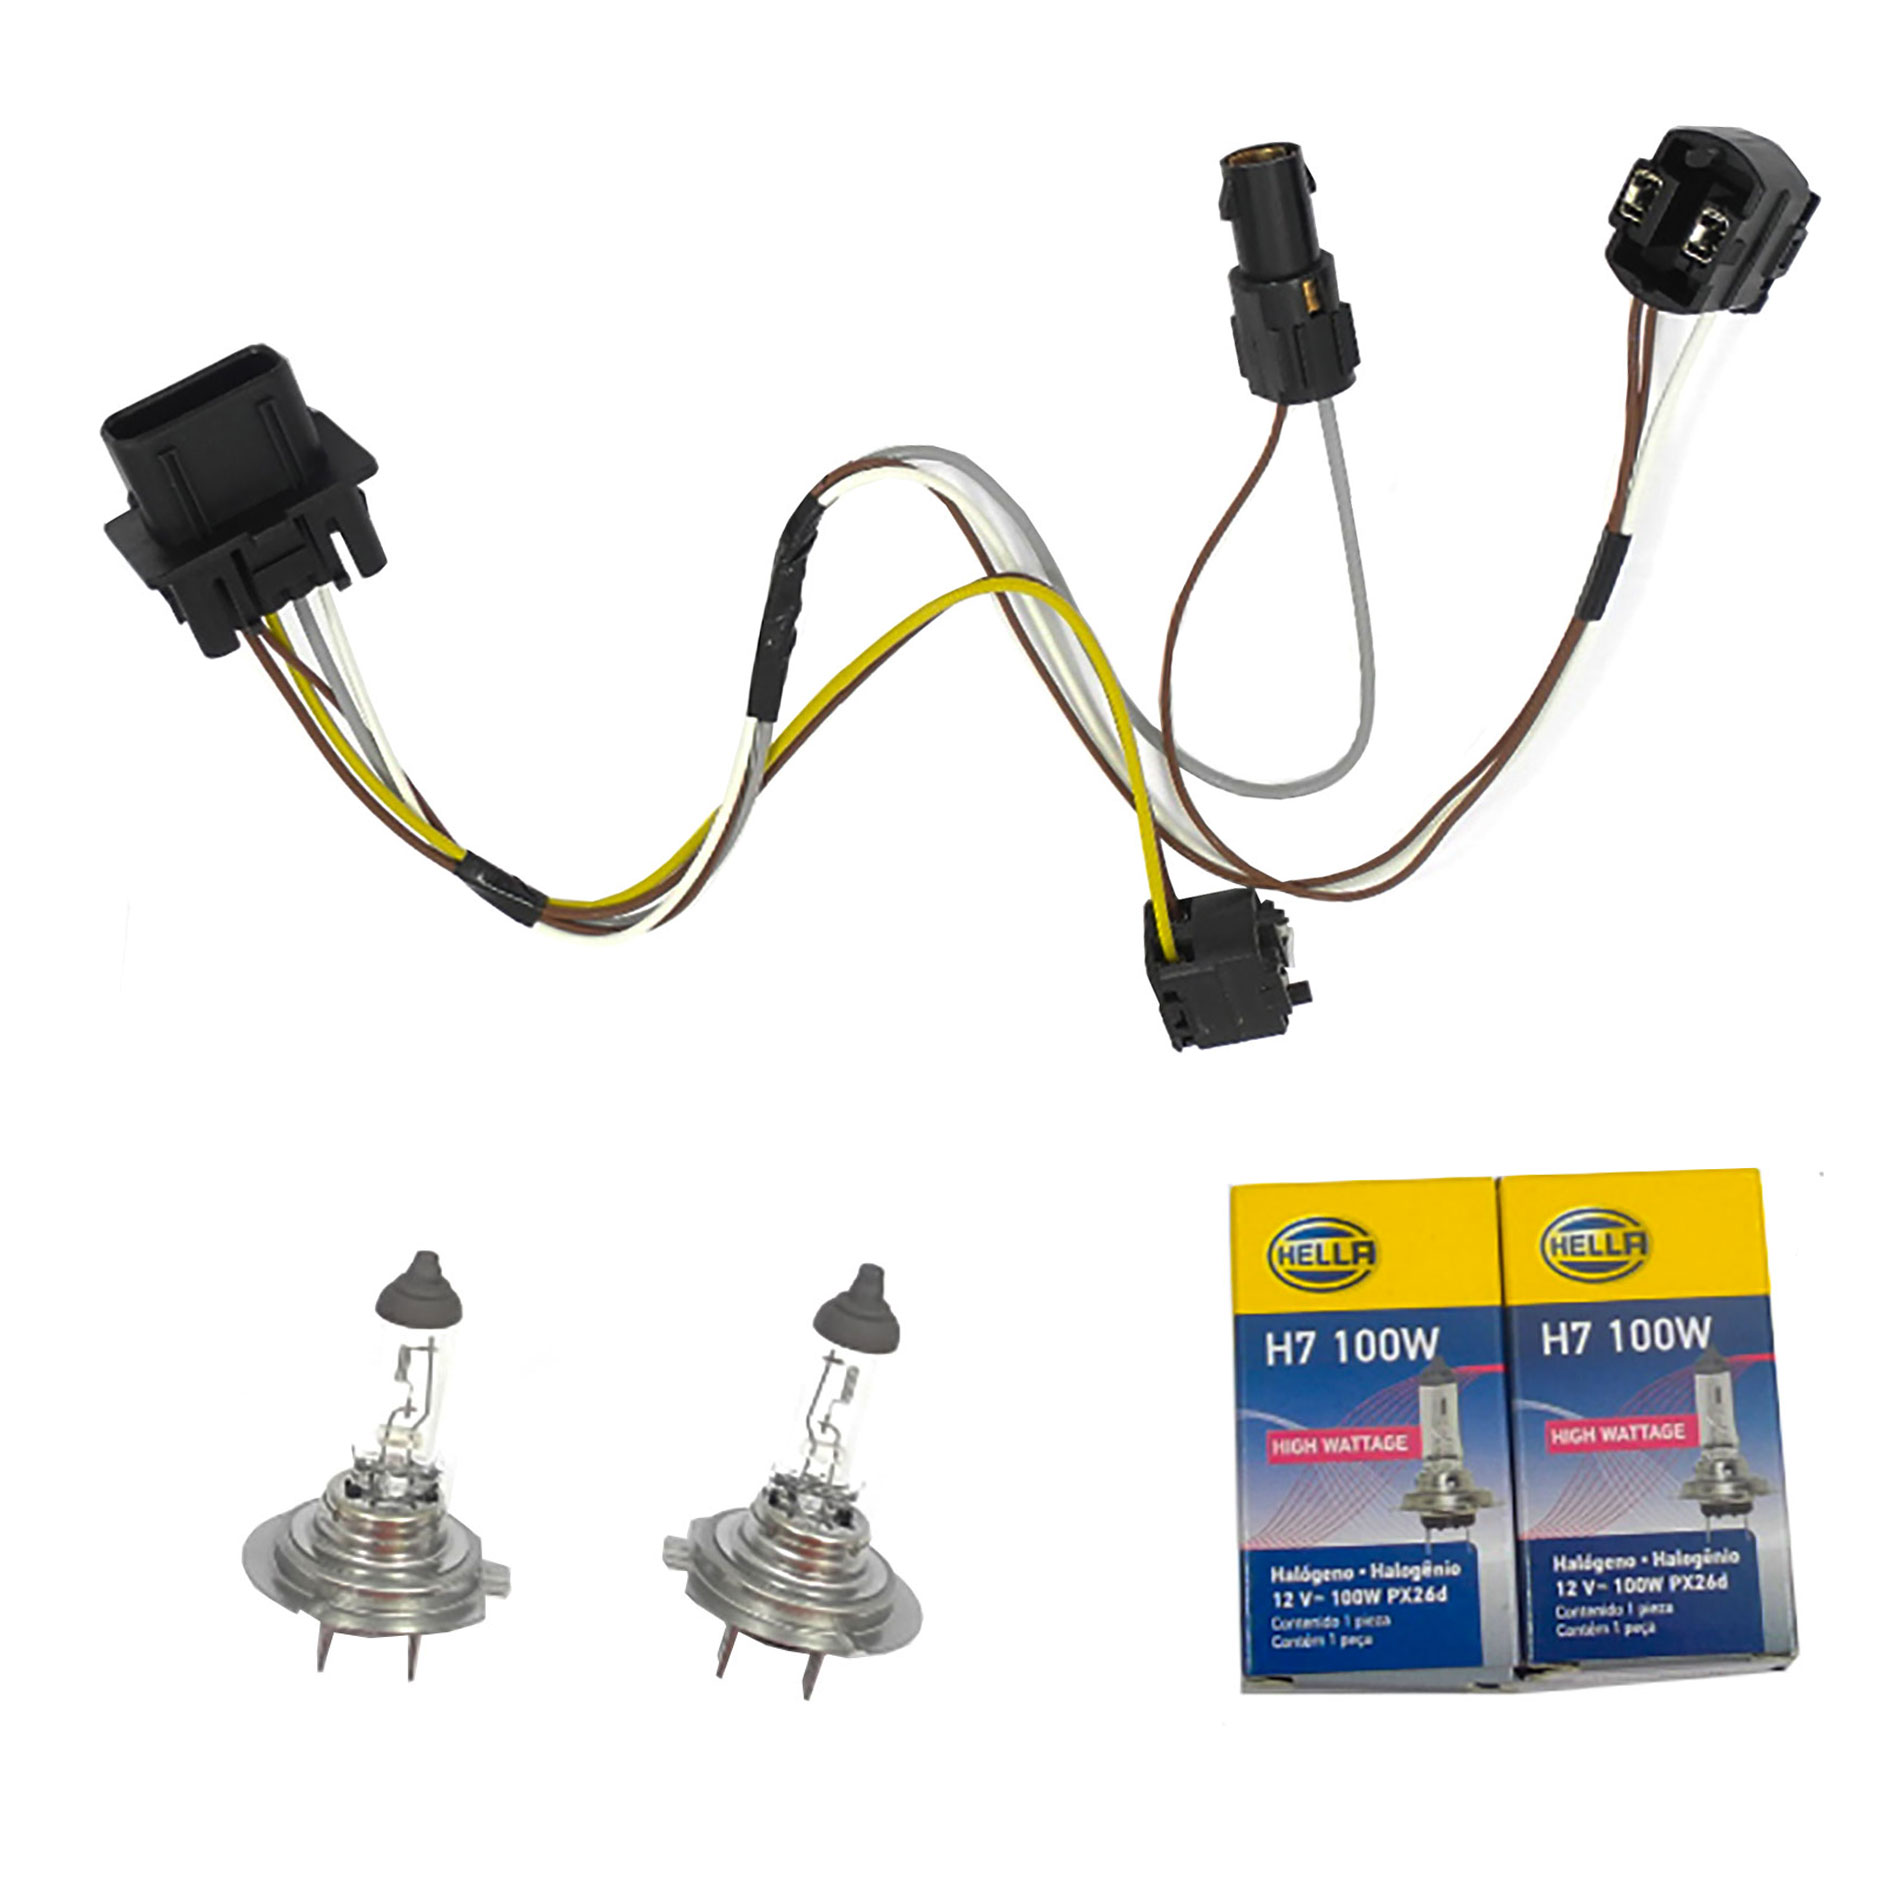 hight resolution of cf advance for 96 03 mercedes benz e300 e320 e420 e430 e500 e55 amg 1997 mercedes e320 problems 1997 mercedes e320 headlight wiring harness